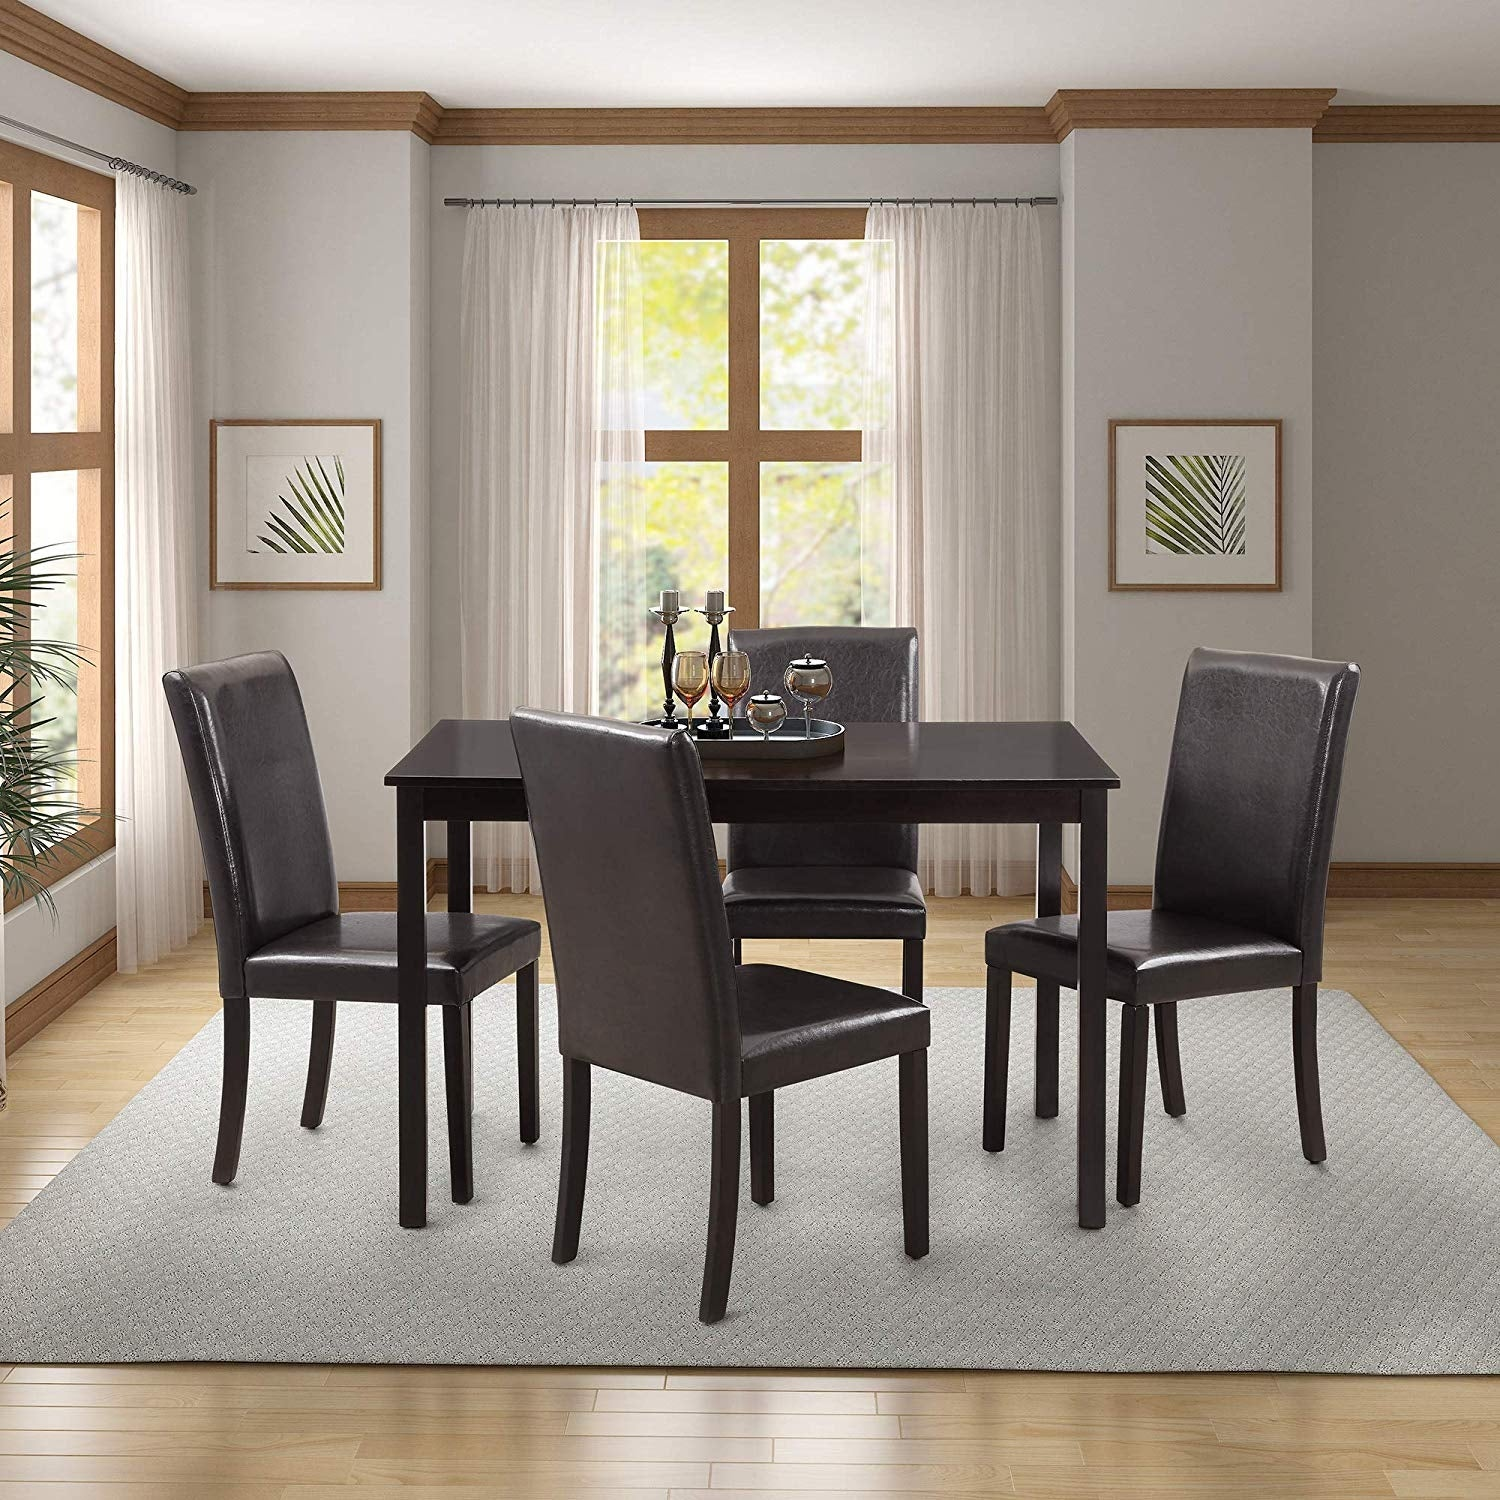 5 Pieces Dining Table Set For 4 Person Home Kitchen And Leather Chairs